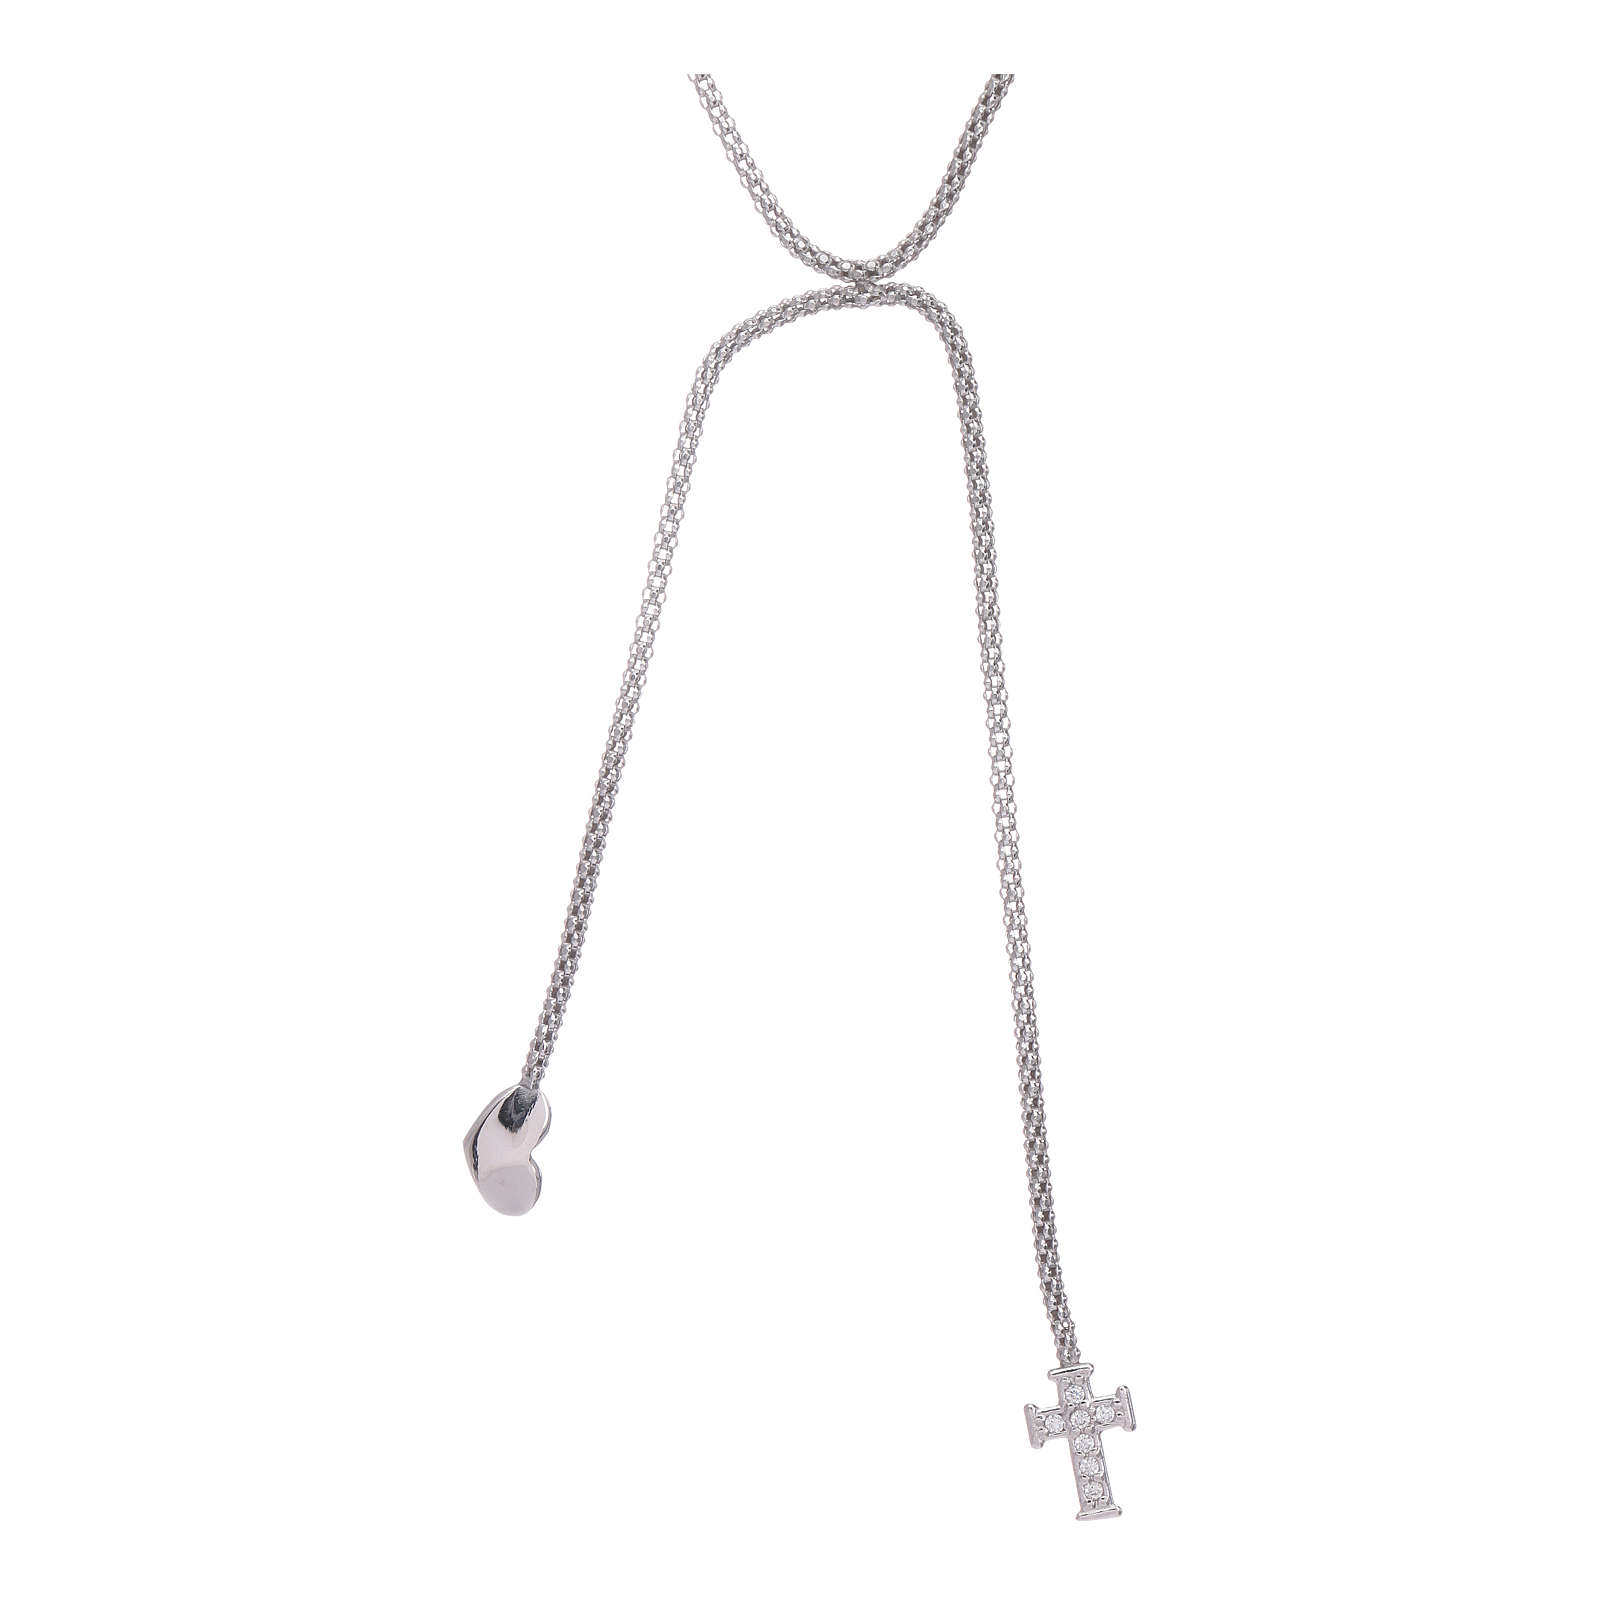 AMEN necklace hug model with heart and cross decorated with white zircons in 925 sterling silver 4